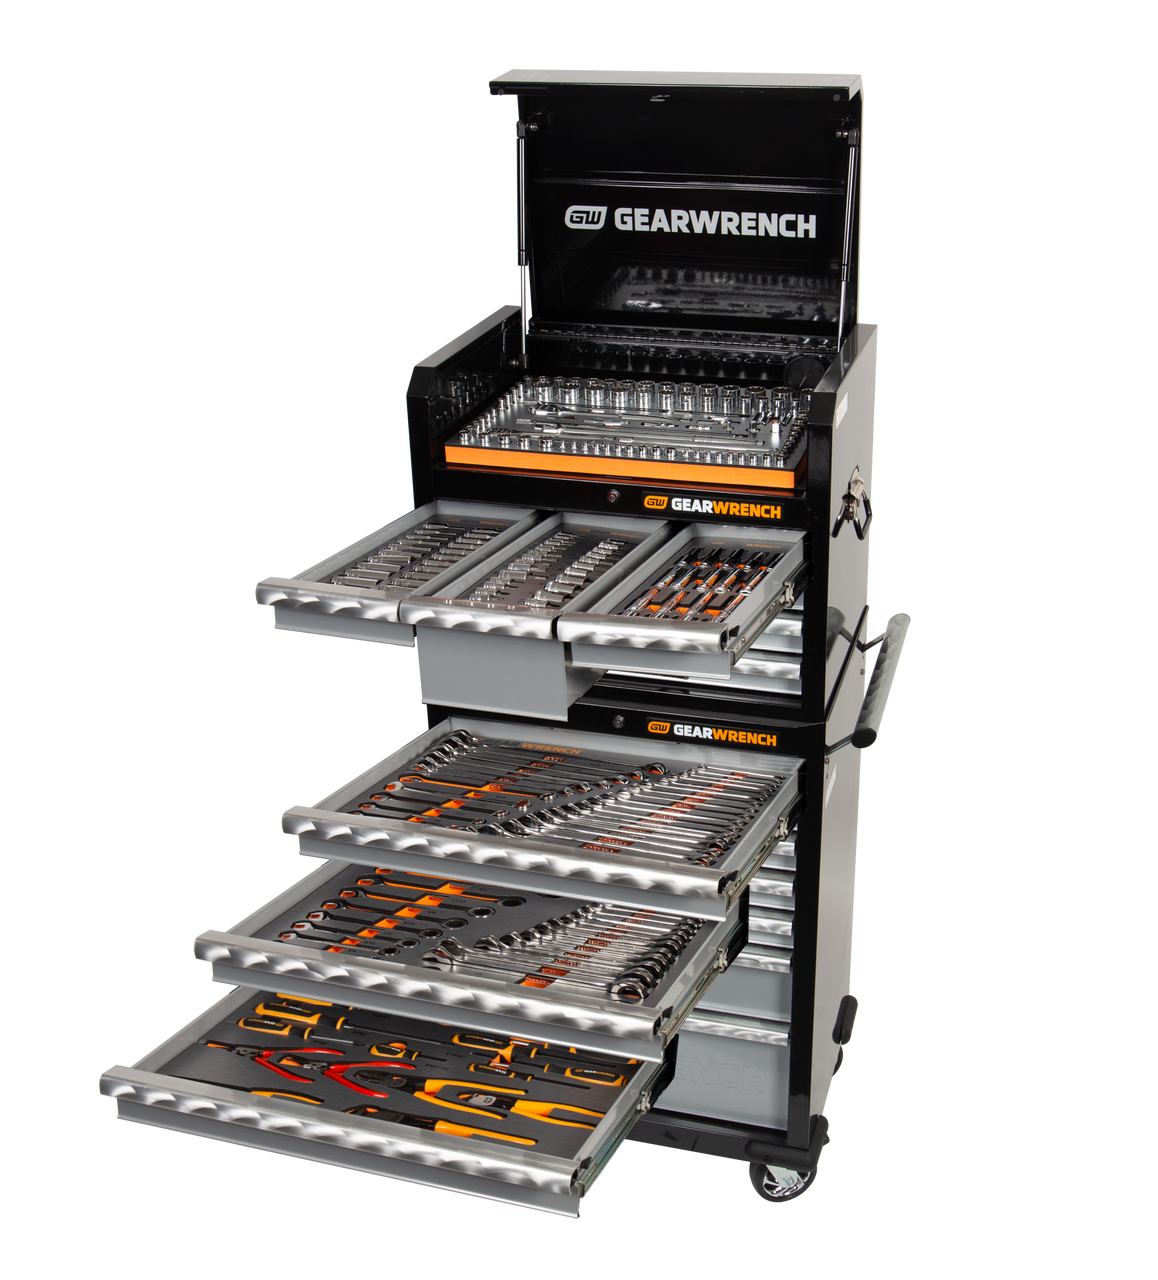 Gearwrench 234 piece tool kit product code 89926